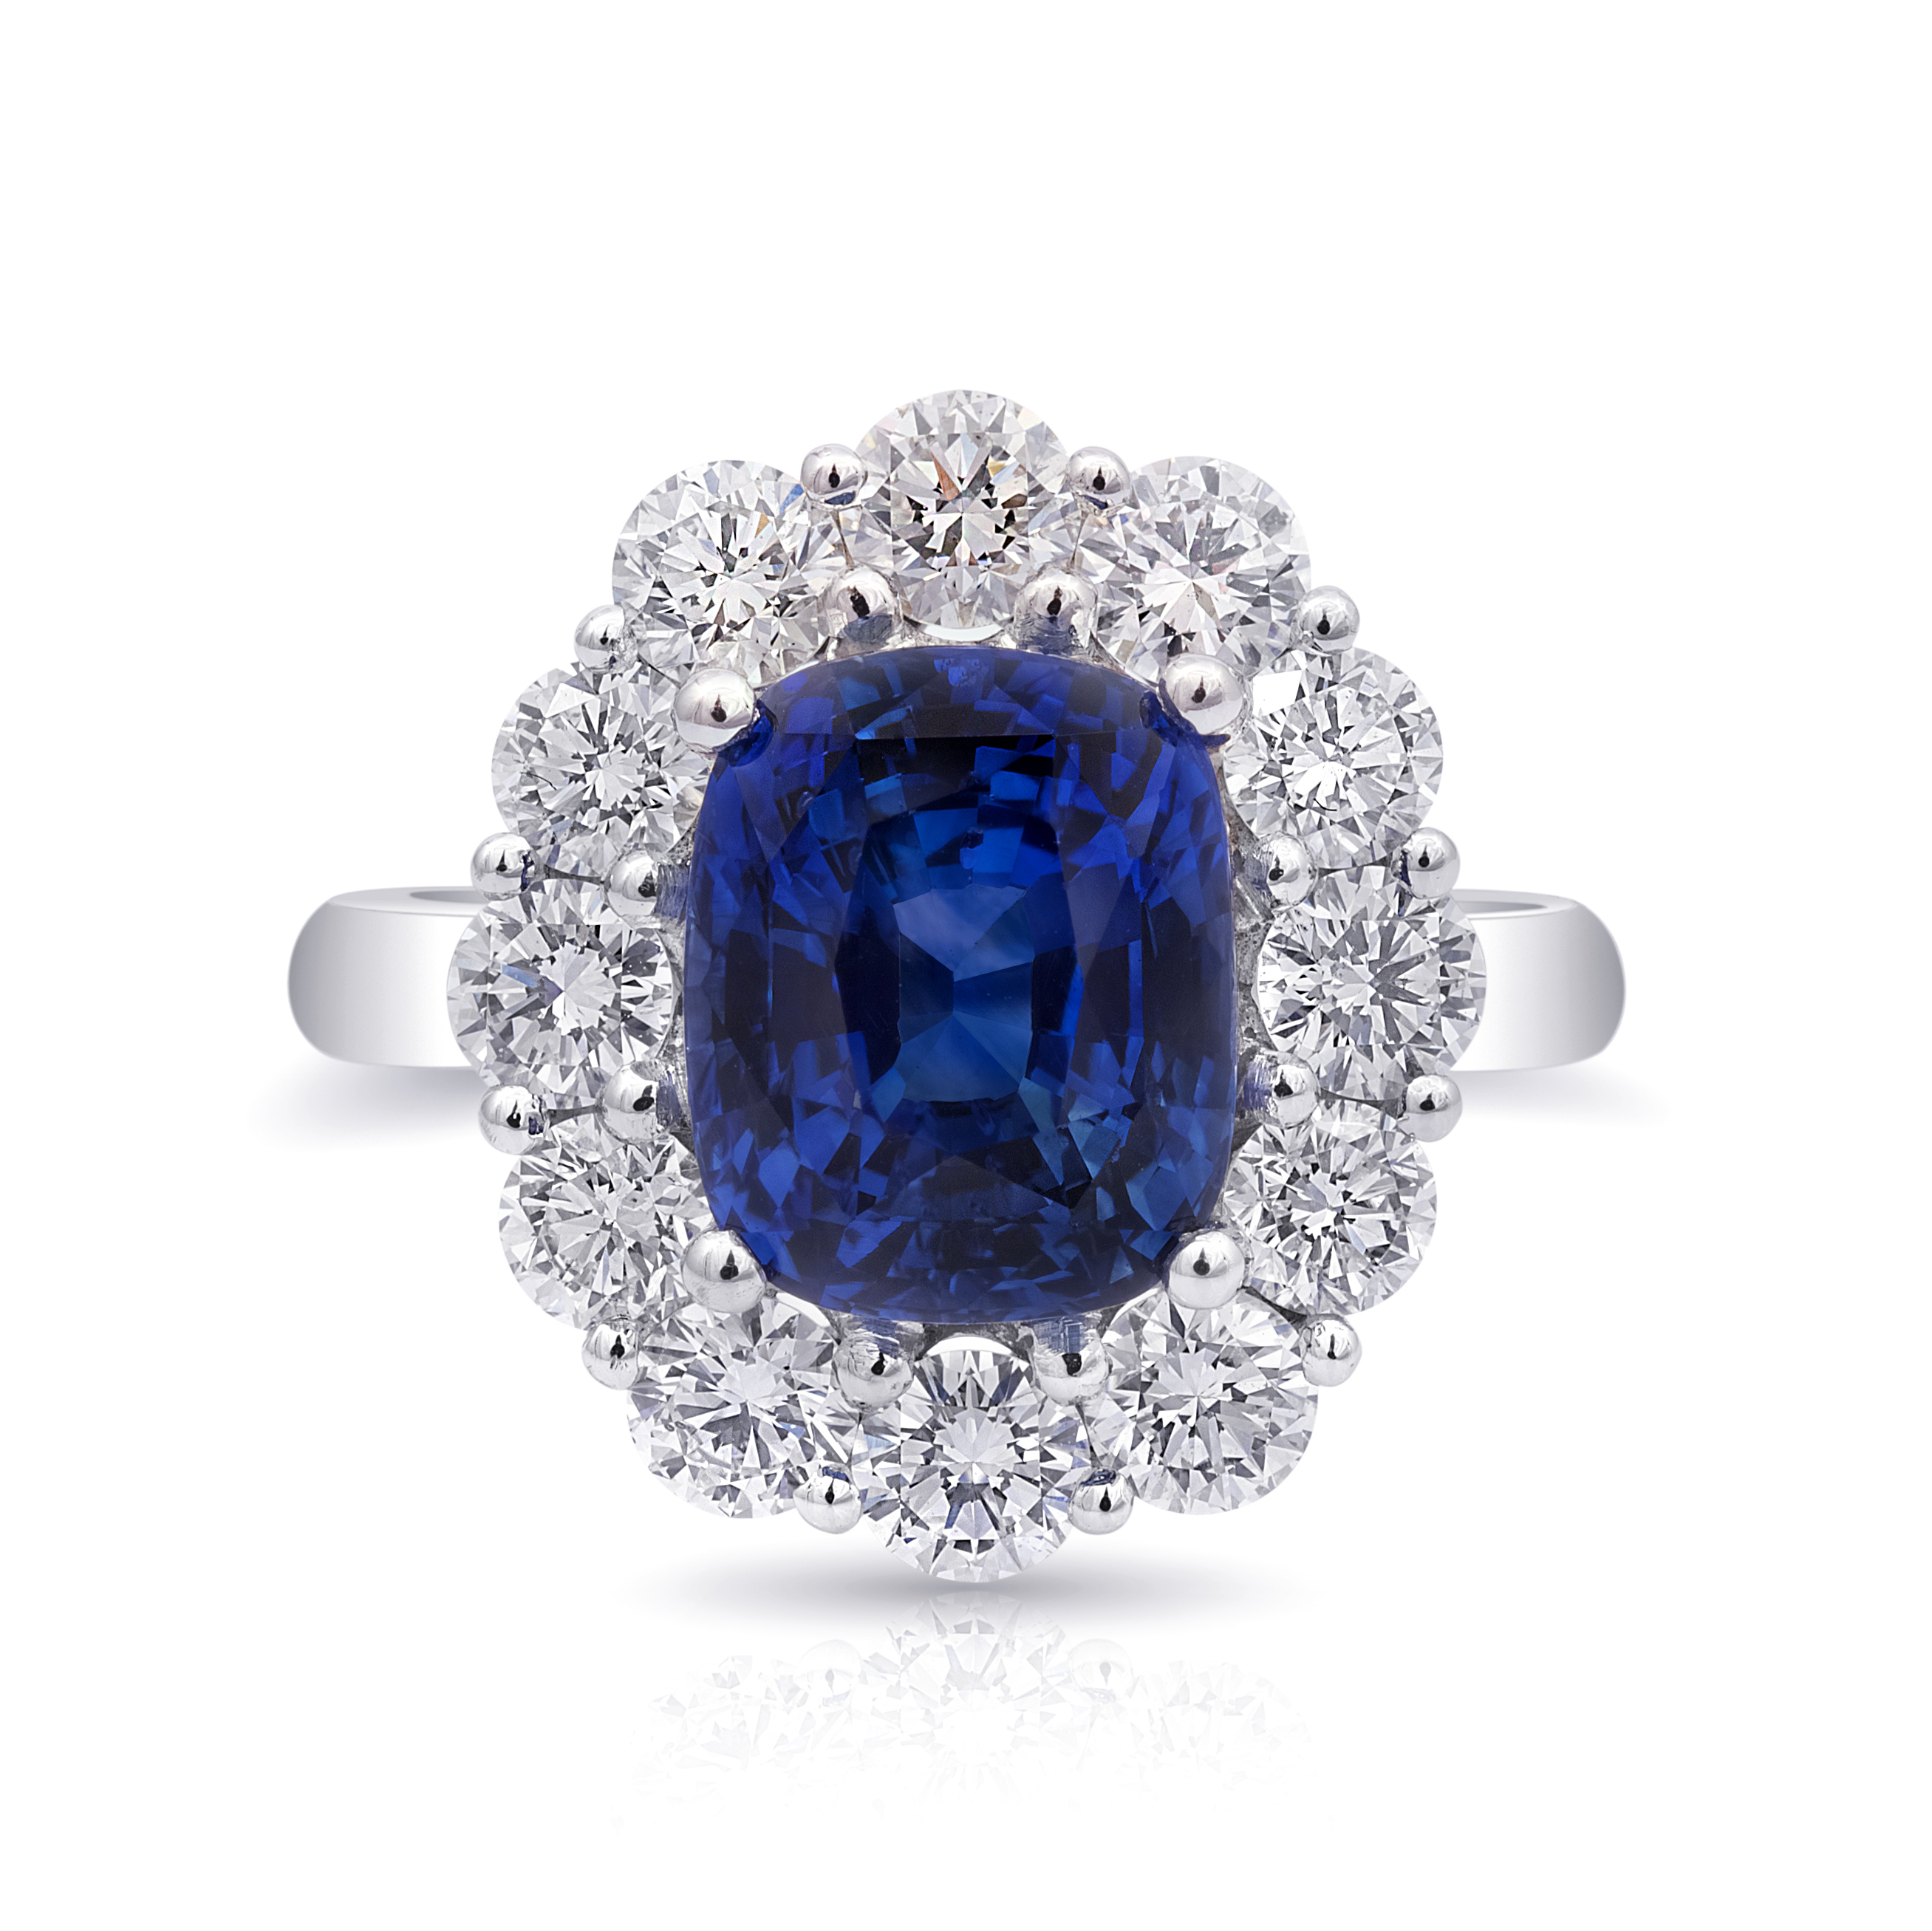 fullxfull with clear diana for anniversary listing engagement her ct diamond sapphire gold il ring blue yellow